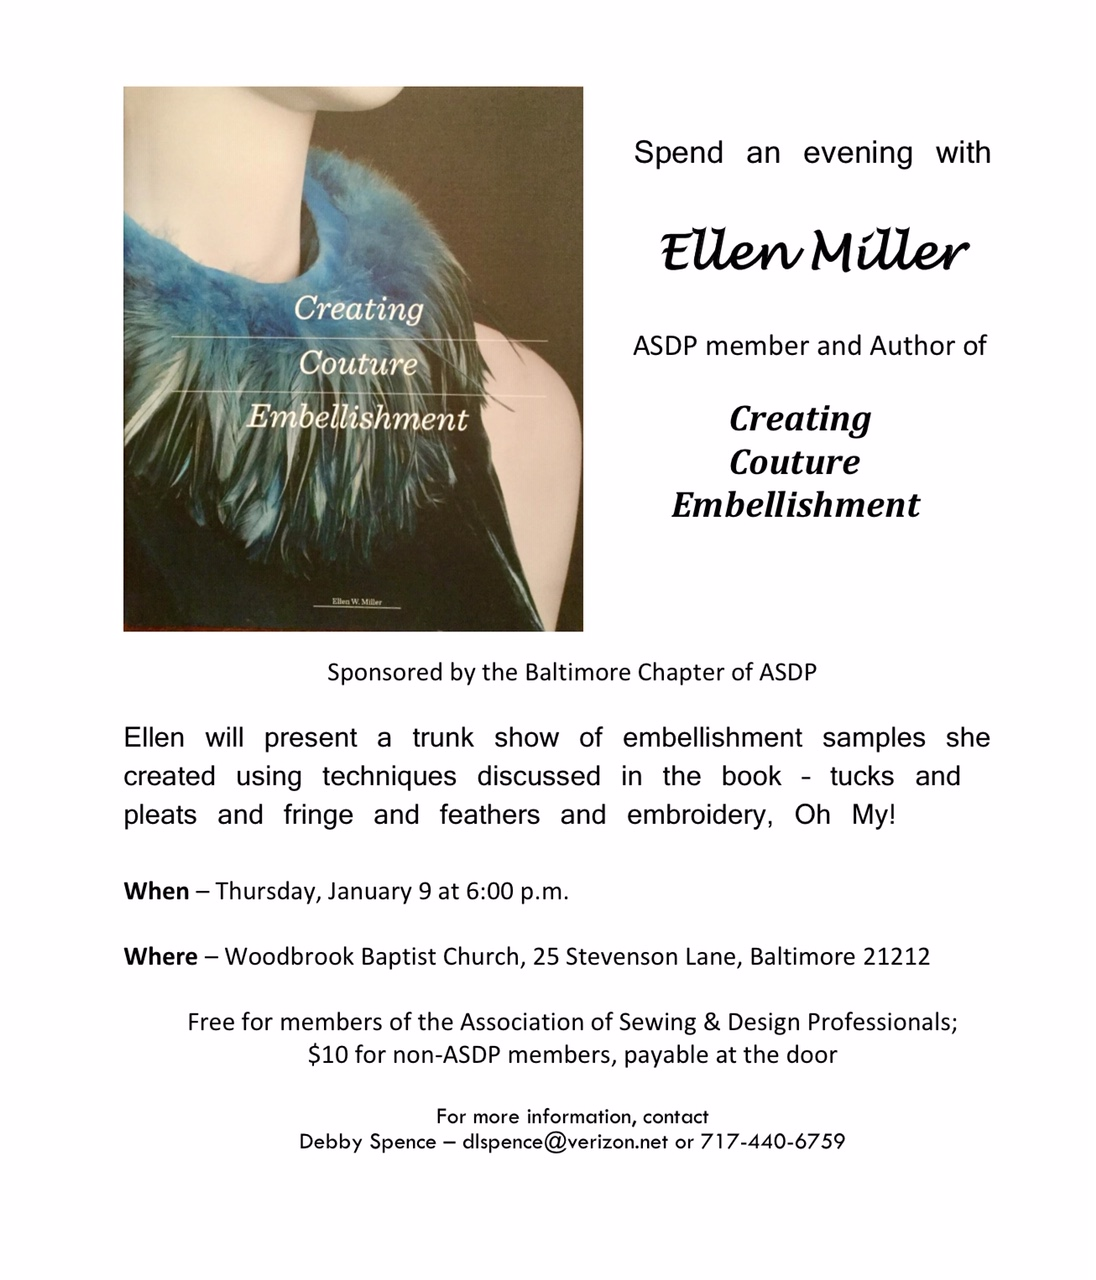 Flyer about Ellen Miller presenting trunk show of samples made for Creating Couture Embellishment. January 9, 2020, Baltimore MD.